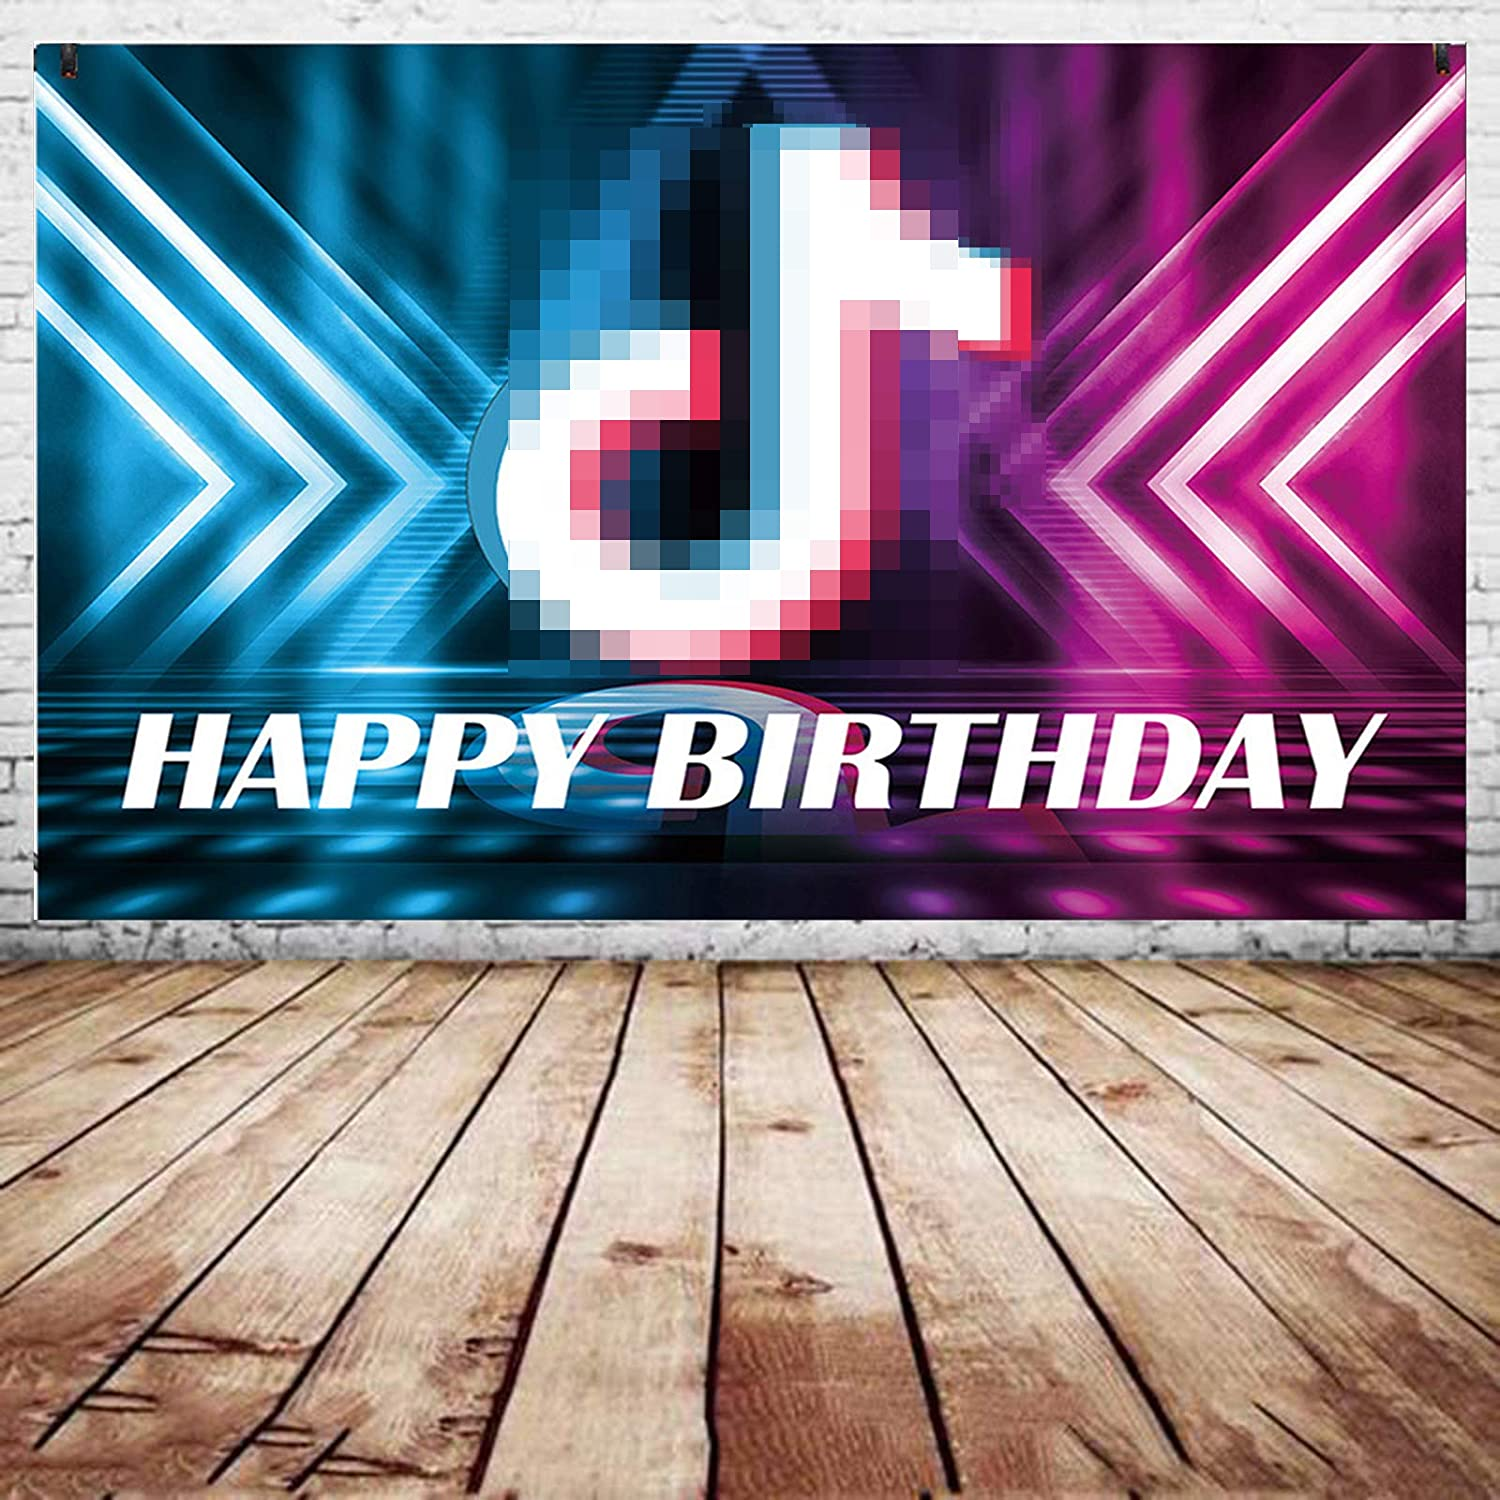 TIK Tok Birthday Party Banner Decorations - TIK Tok Backdrop and Music Theme Birthday Banner for Girl's Music Karaoke Themed Party Supplies (5 * 3ft)